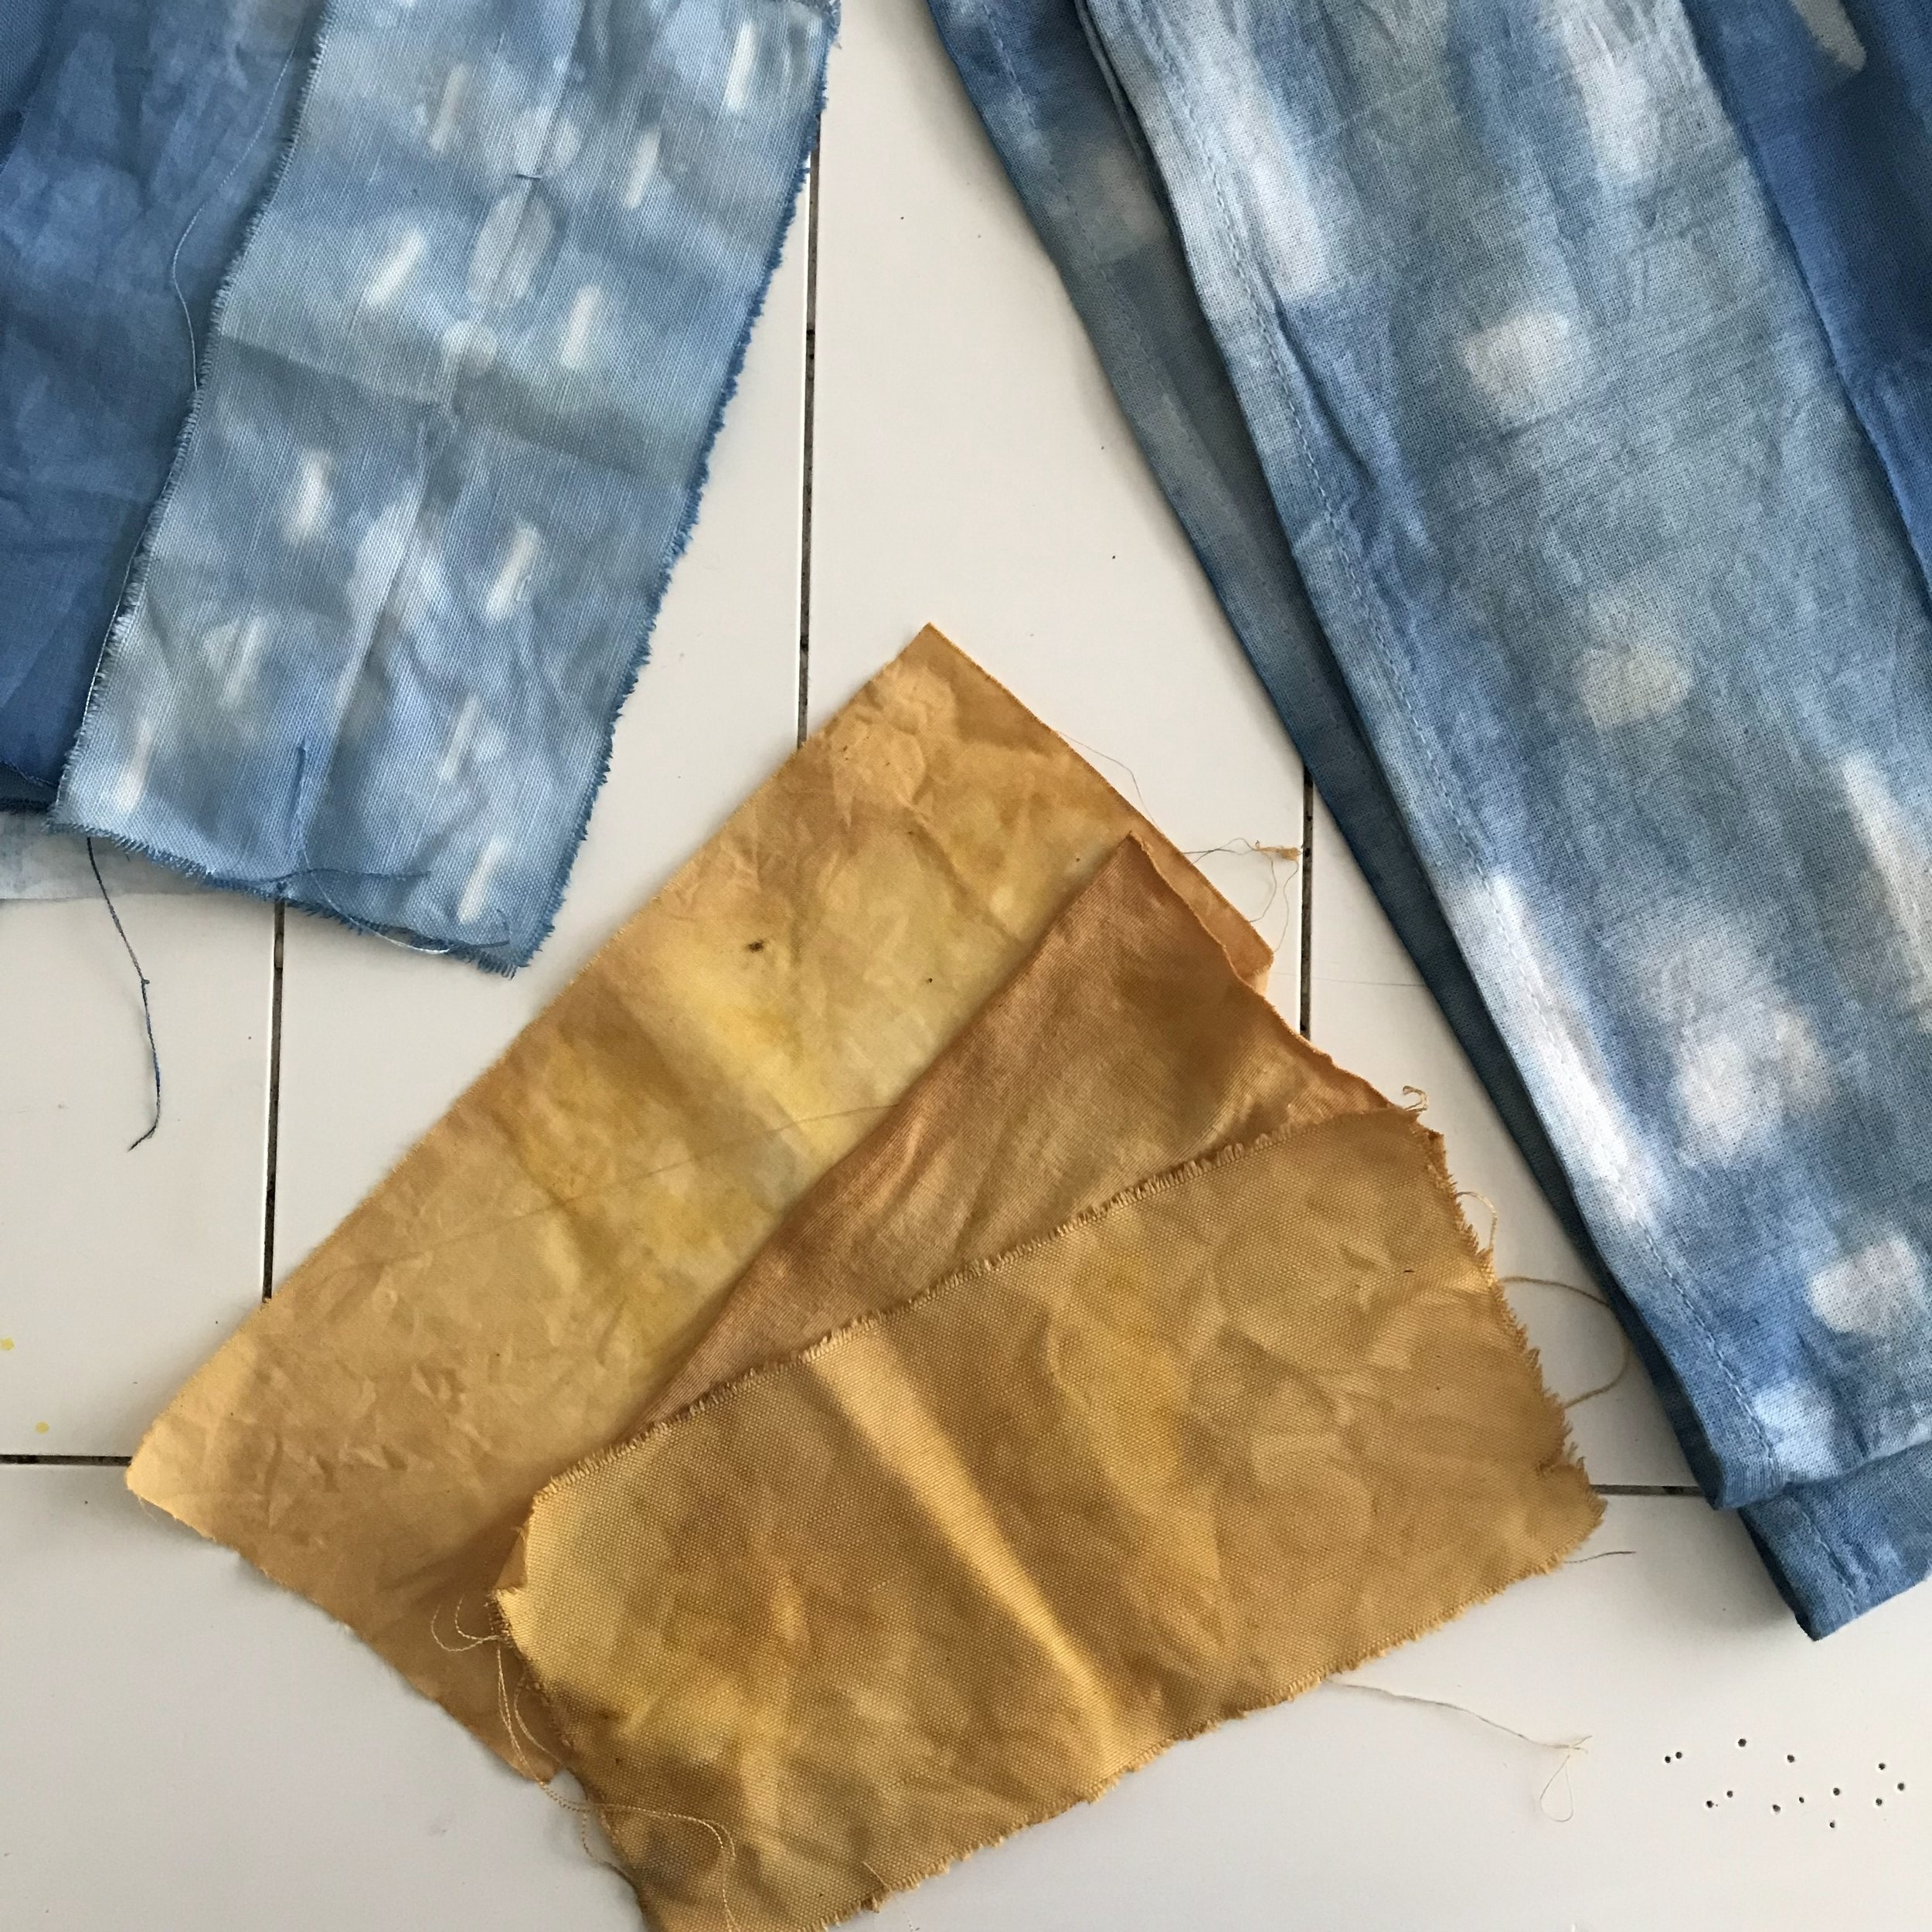 Indigo and onion skin-dyed fabric samples